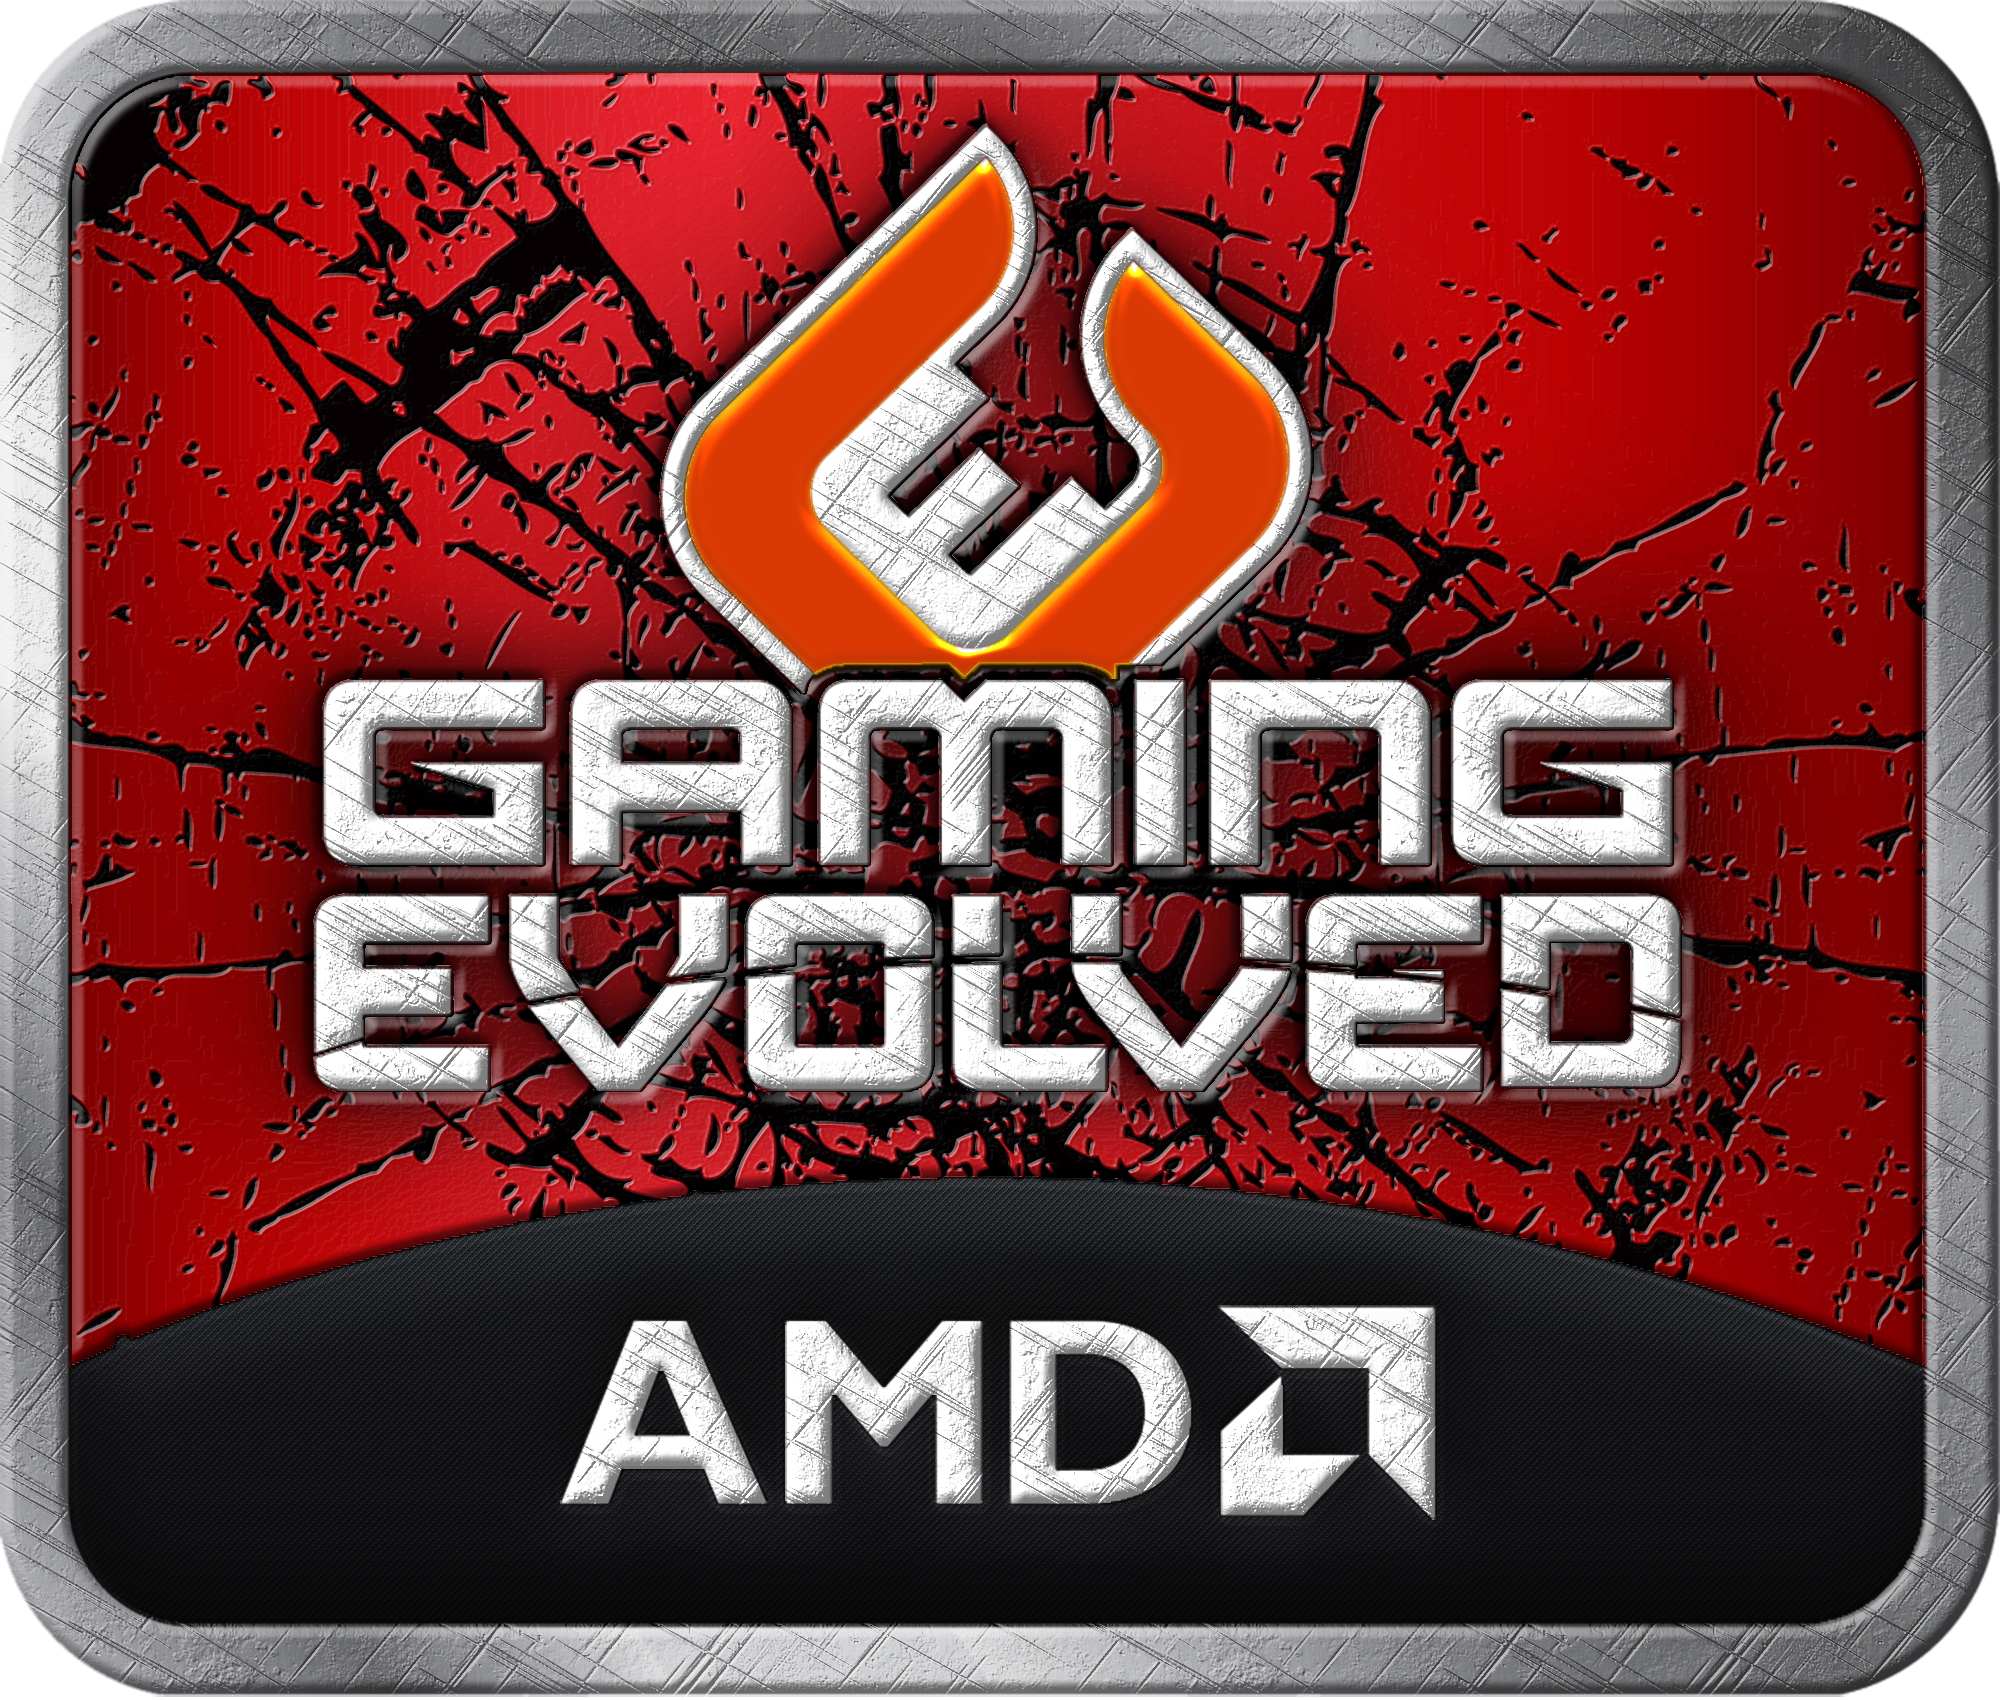 Amd Gaming Evolved By Llexandro On Deviantart